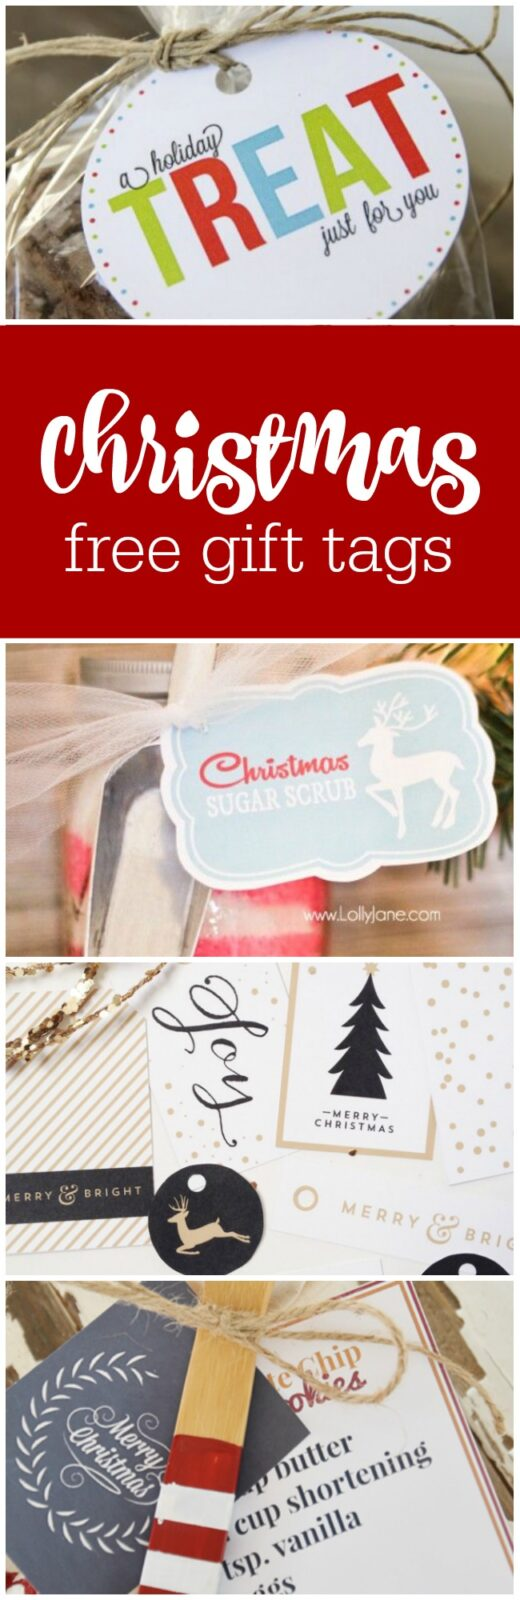 free Christmas gift tags curated by The Party Teacher